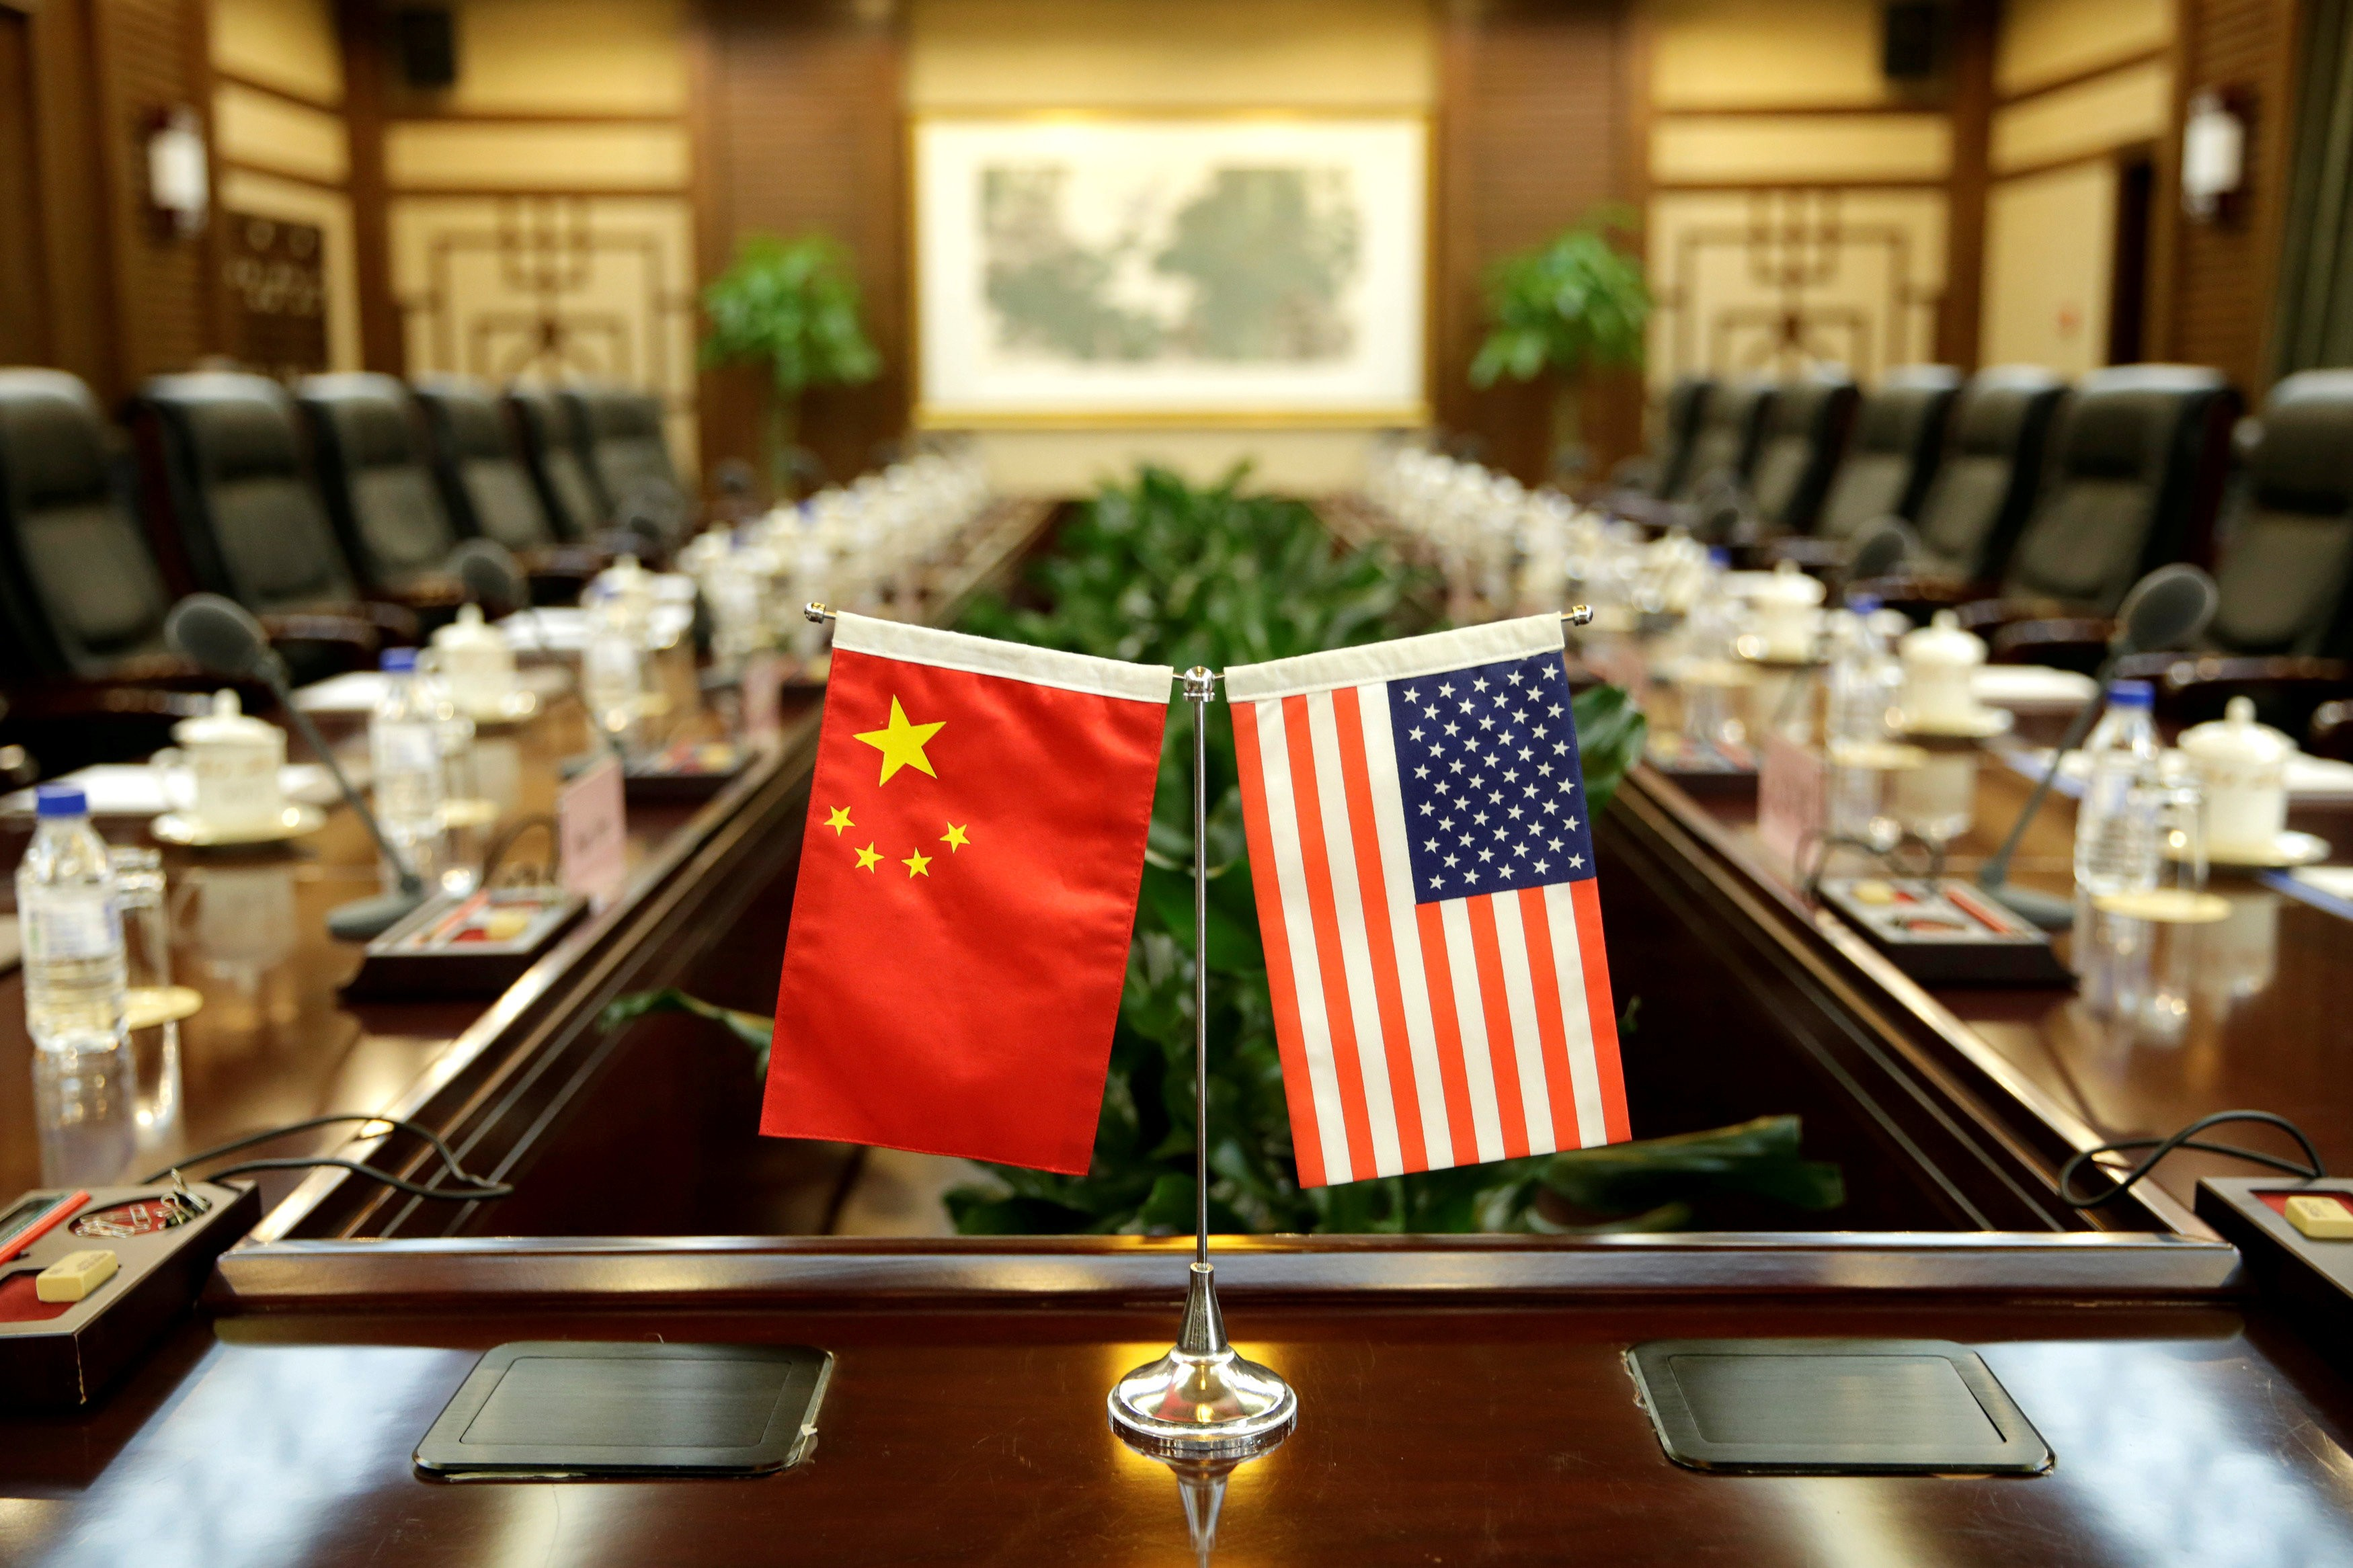 Donald Trump's latest tariff threat raises fears that US-China trade talks will unravel as Beijing vows not to cave in